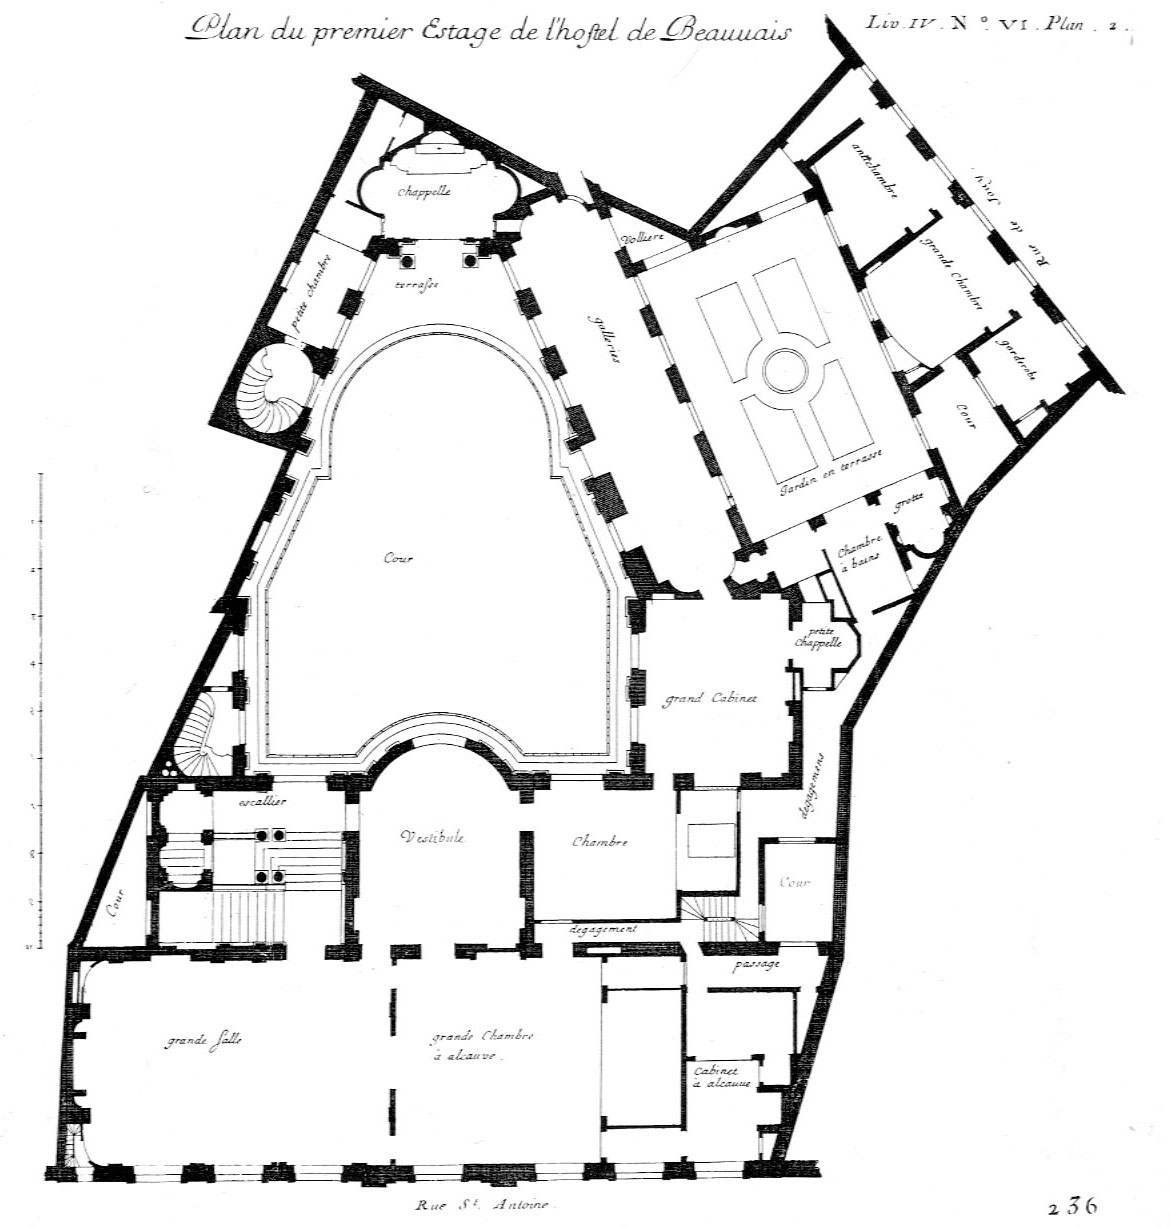 File:K-beauvais-plan-2.jpg - Wikimedia Commons